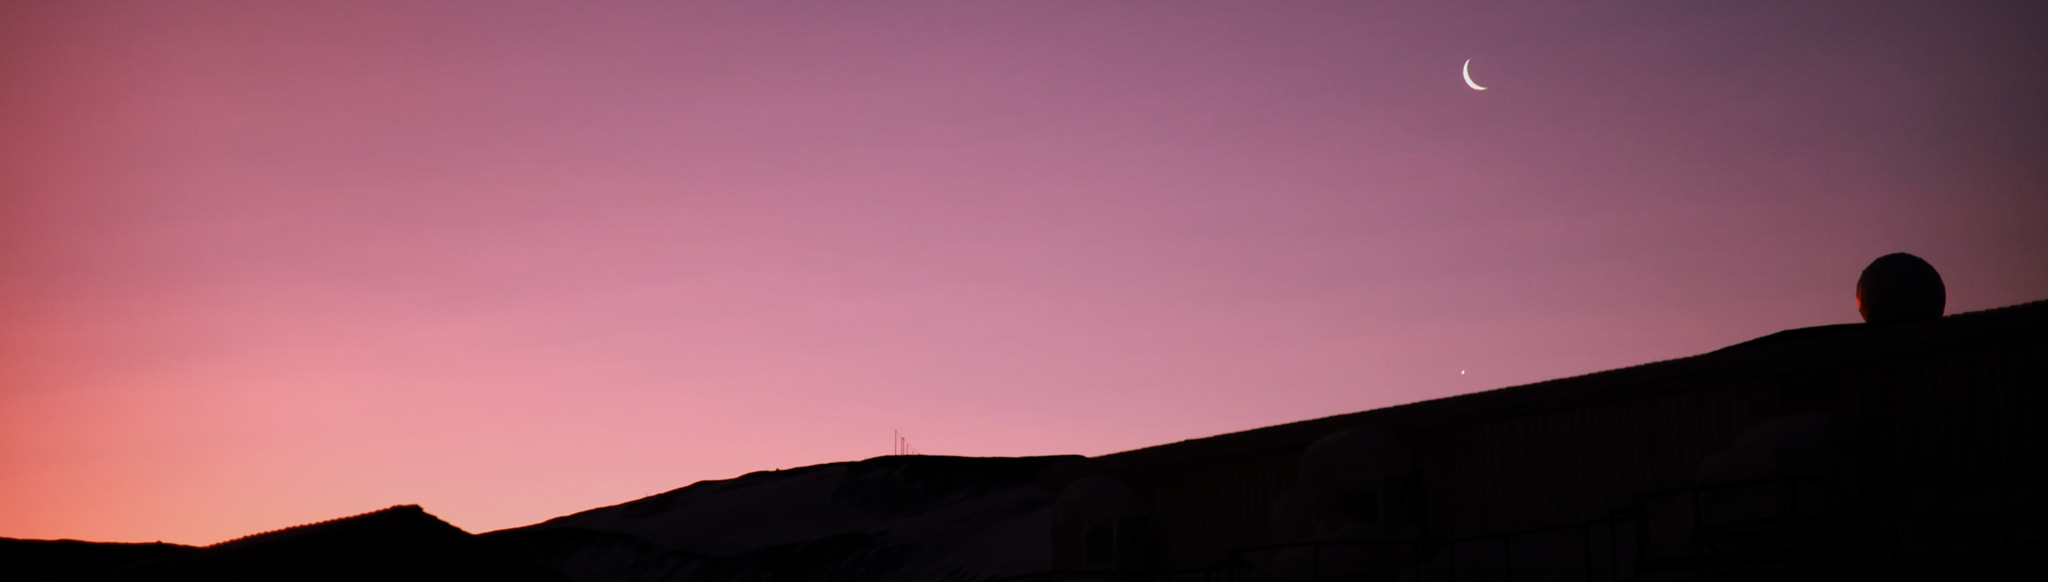 Photograph Crescent Moon by Deven Stross on 500px